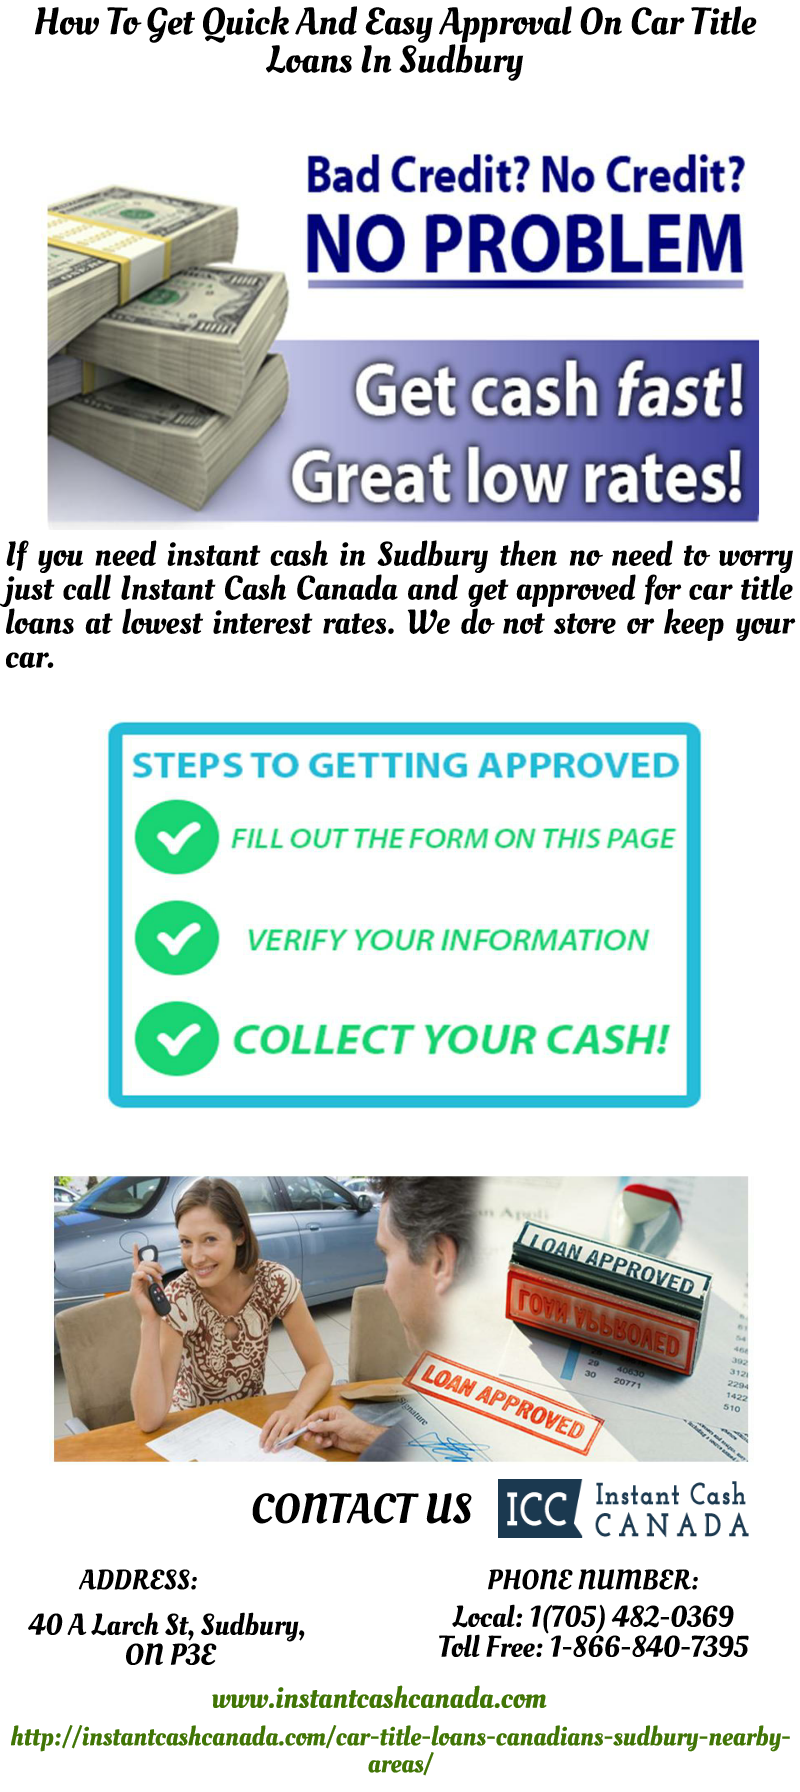 Small payday loan photo 10